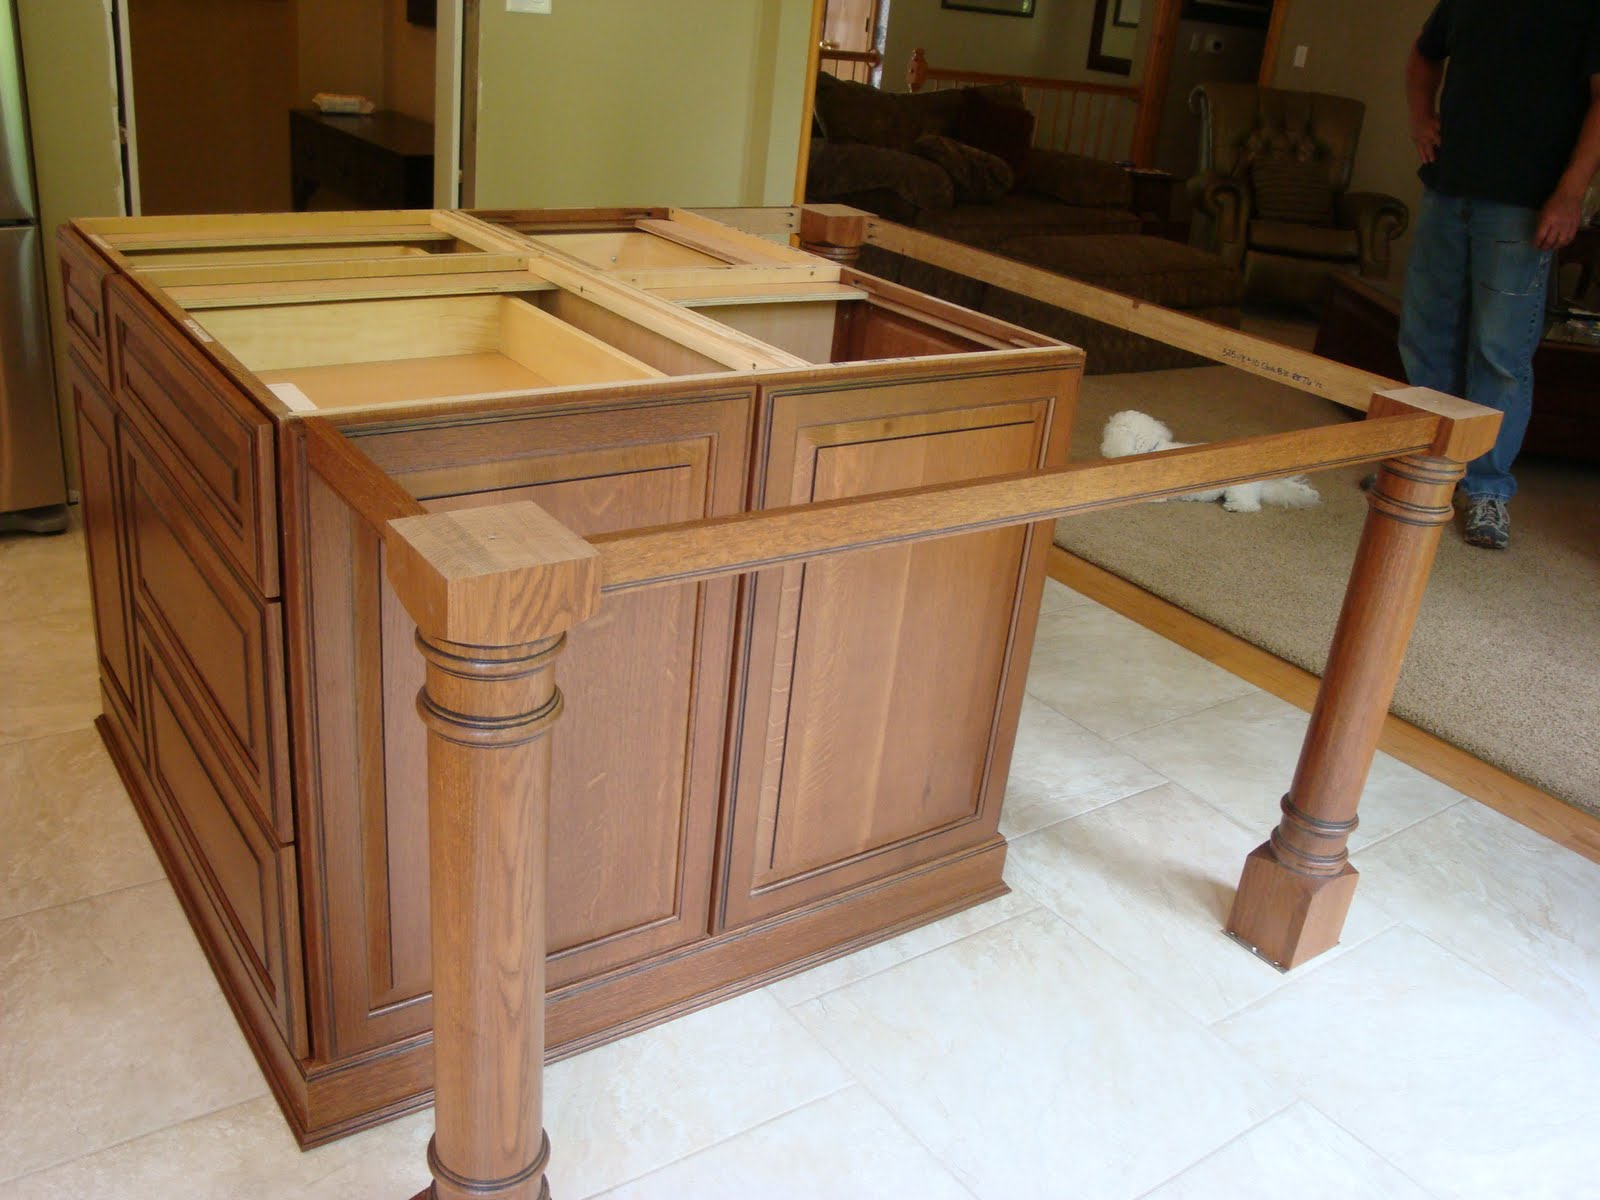 How To Install Kitchen Island Legs